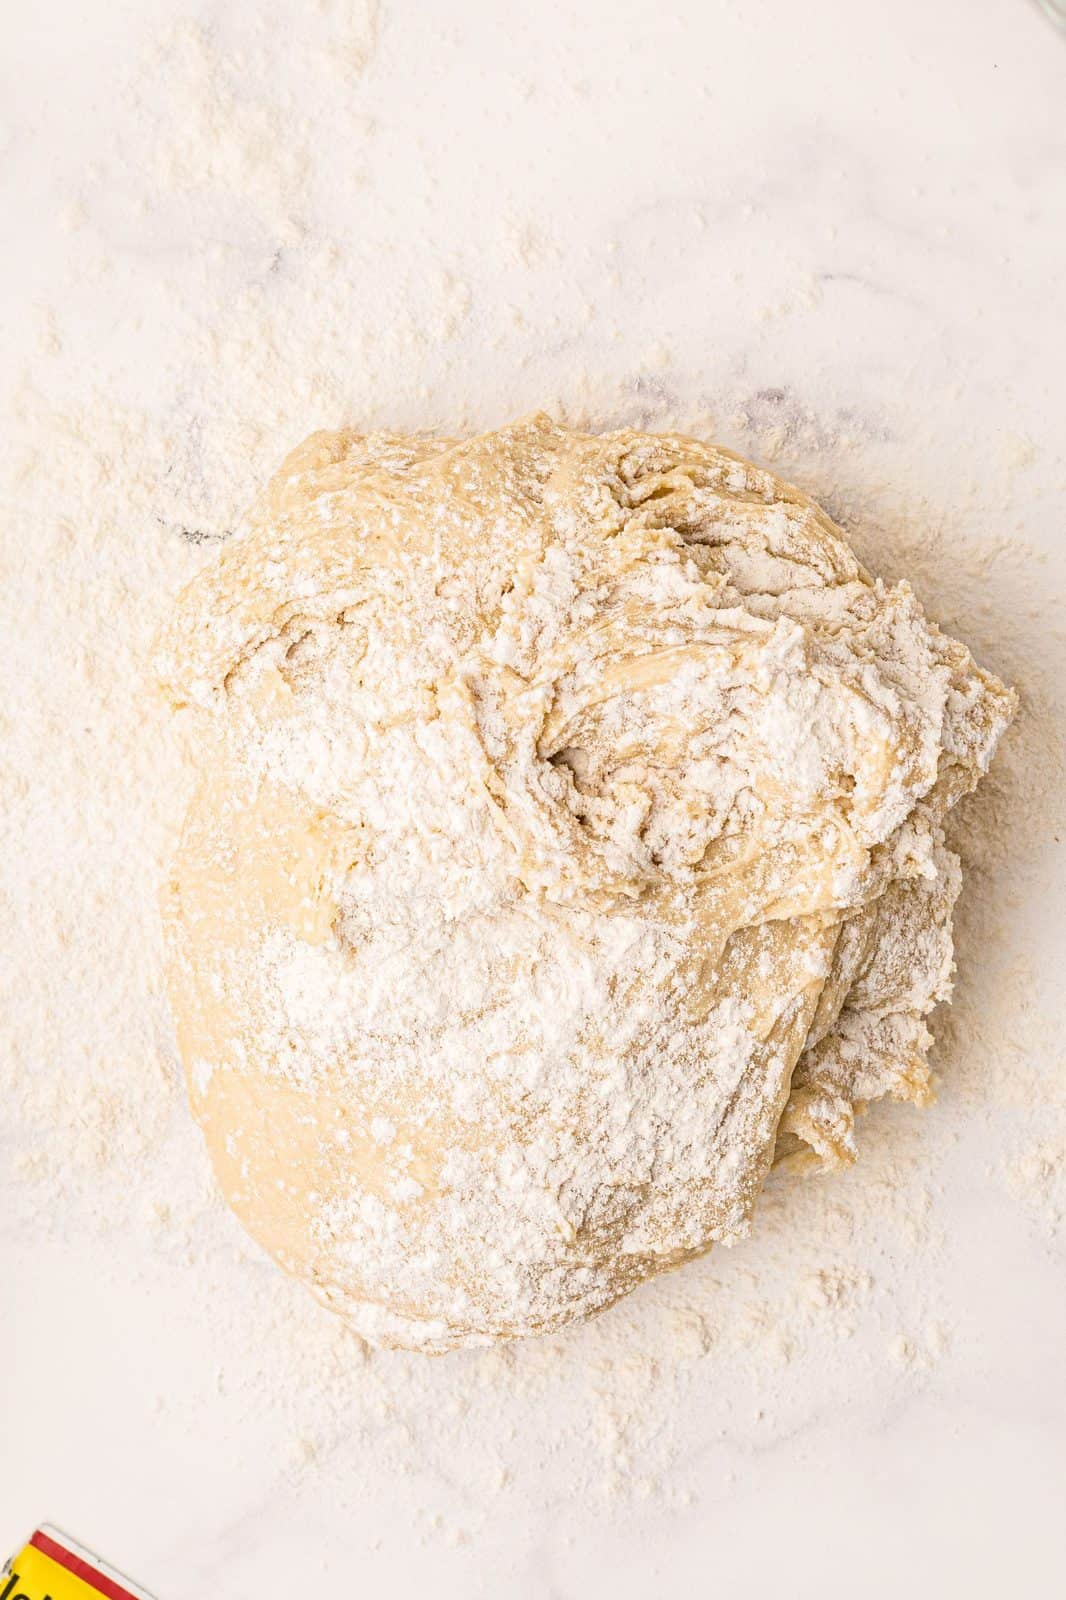 Dough added to floured surface being kneaded.